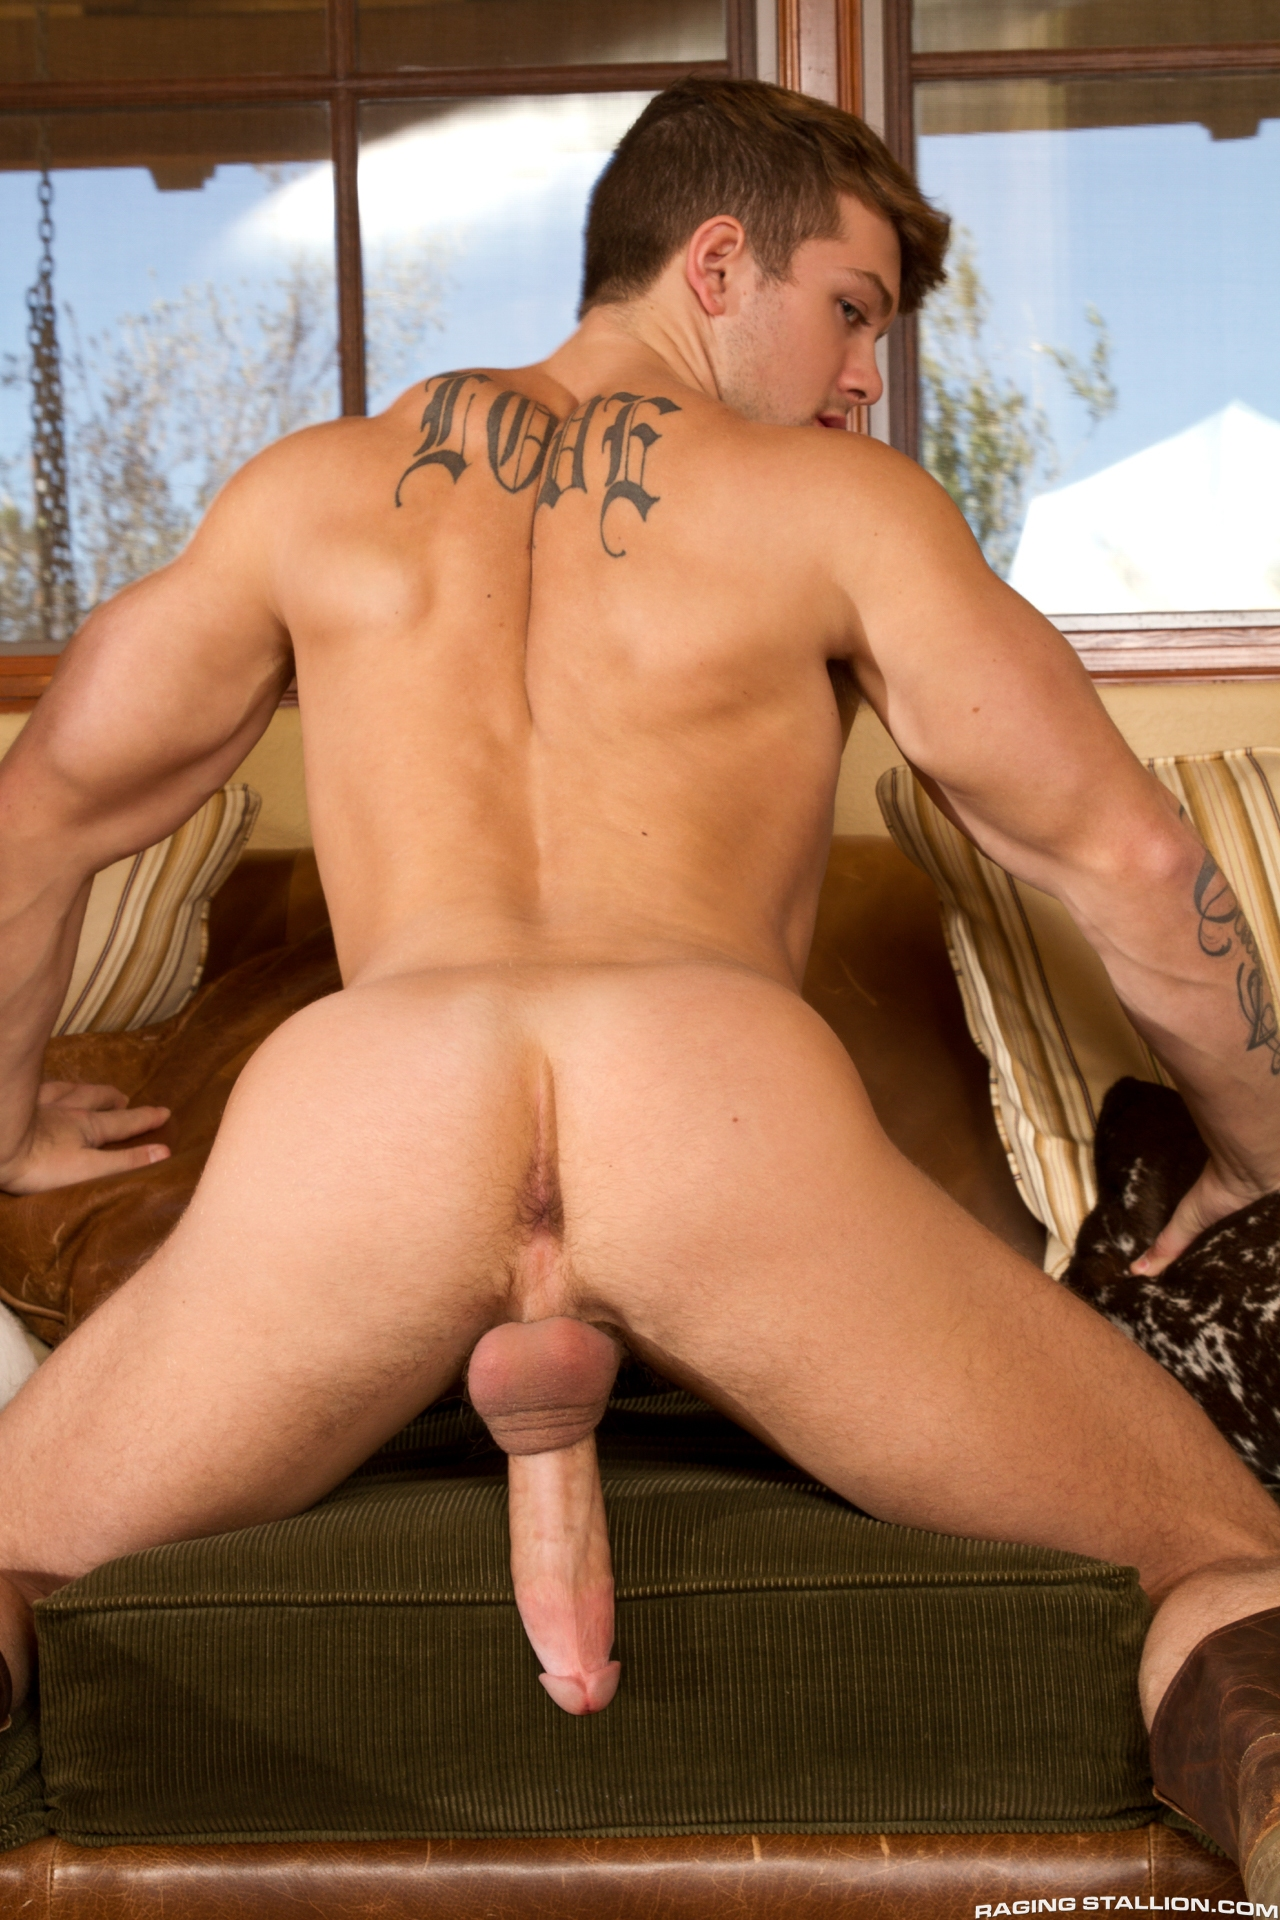 Sex Gay Chubby Men And Galleries Thongs Muscle Man Fucked In The Ass